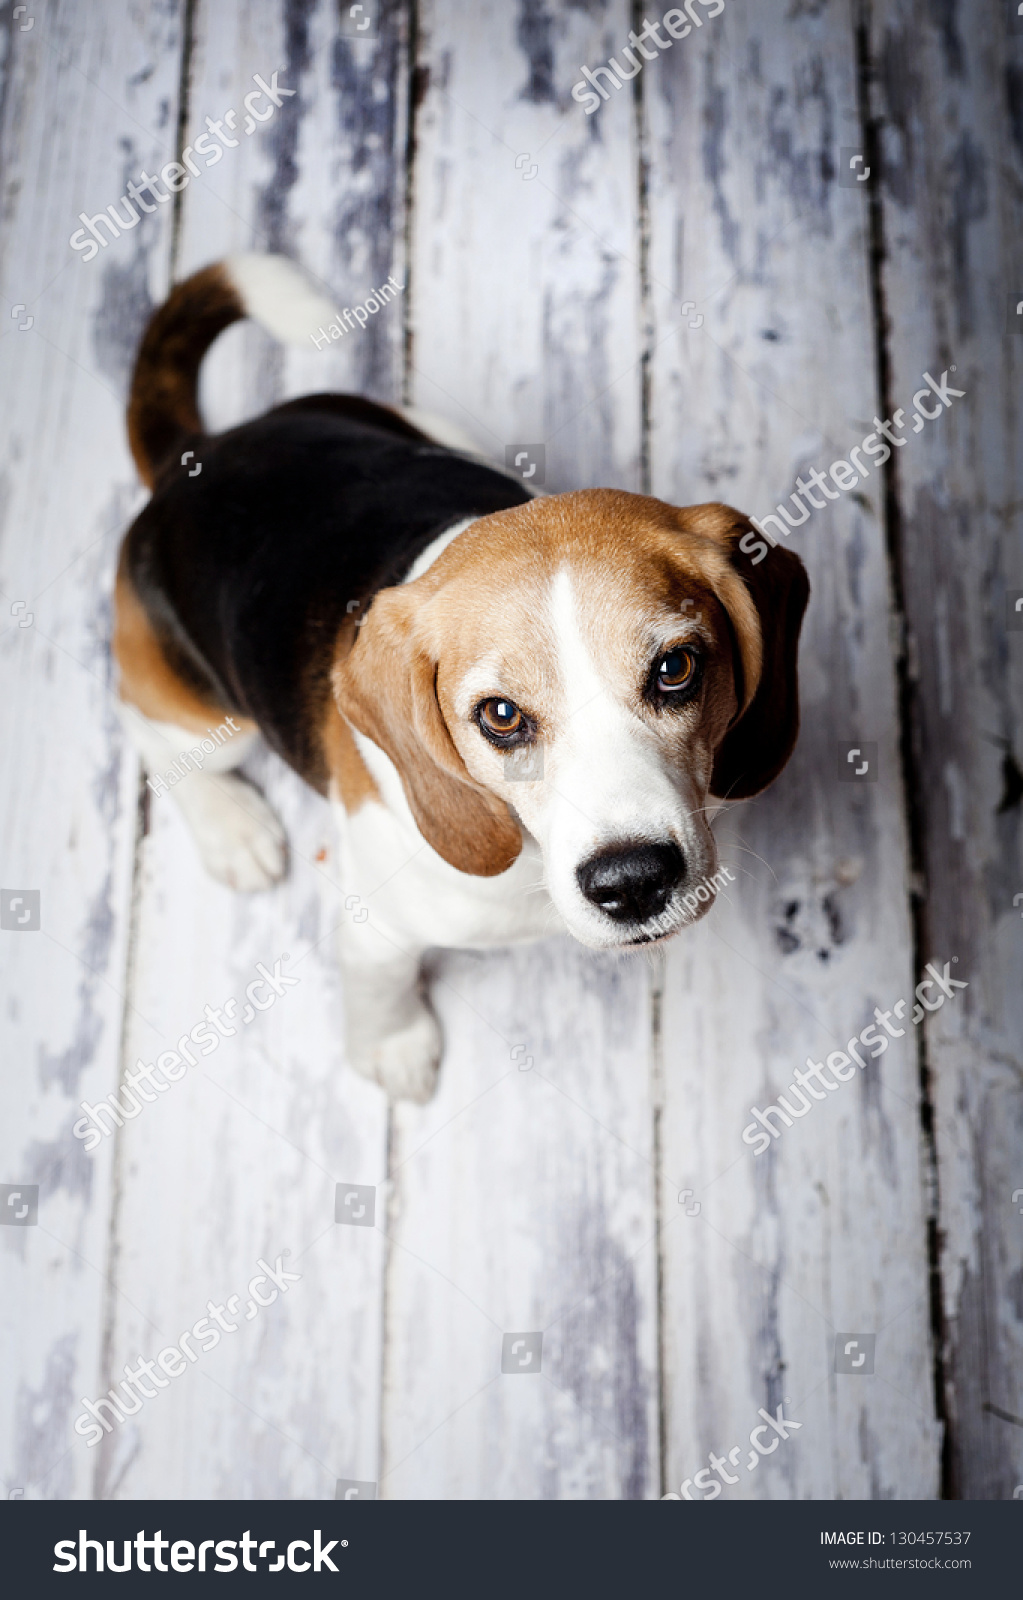 Cute hunting dog  portrait on wooden floor #130457537